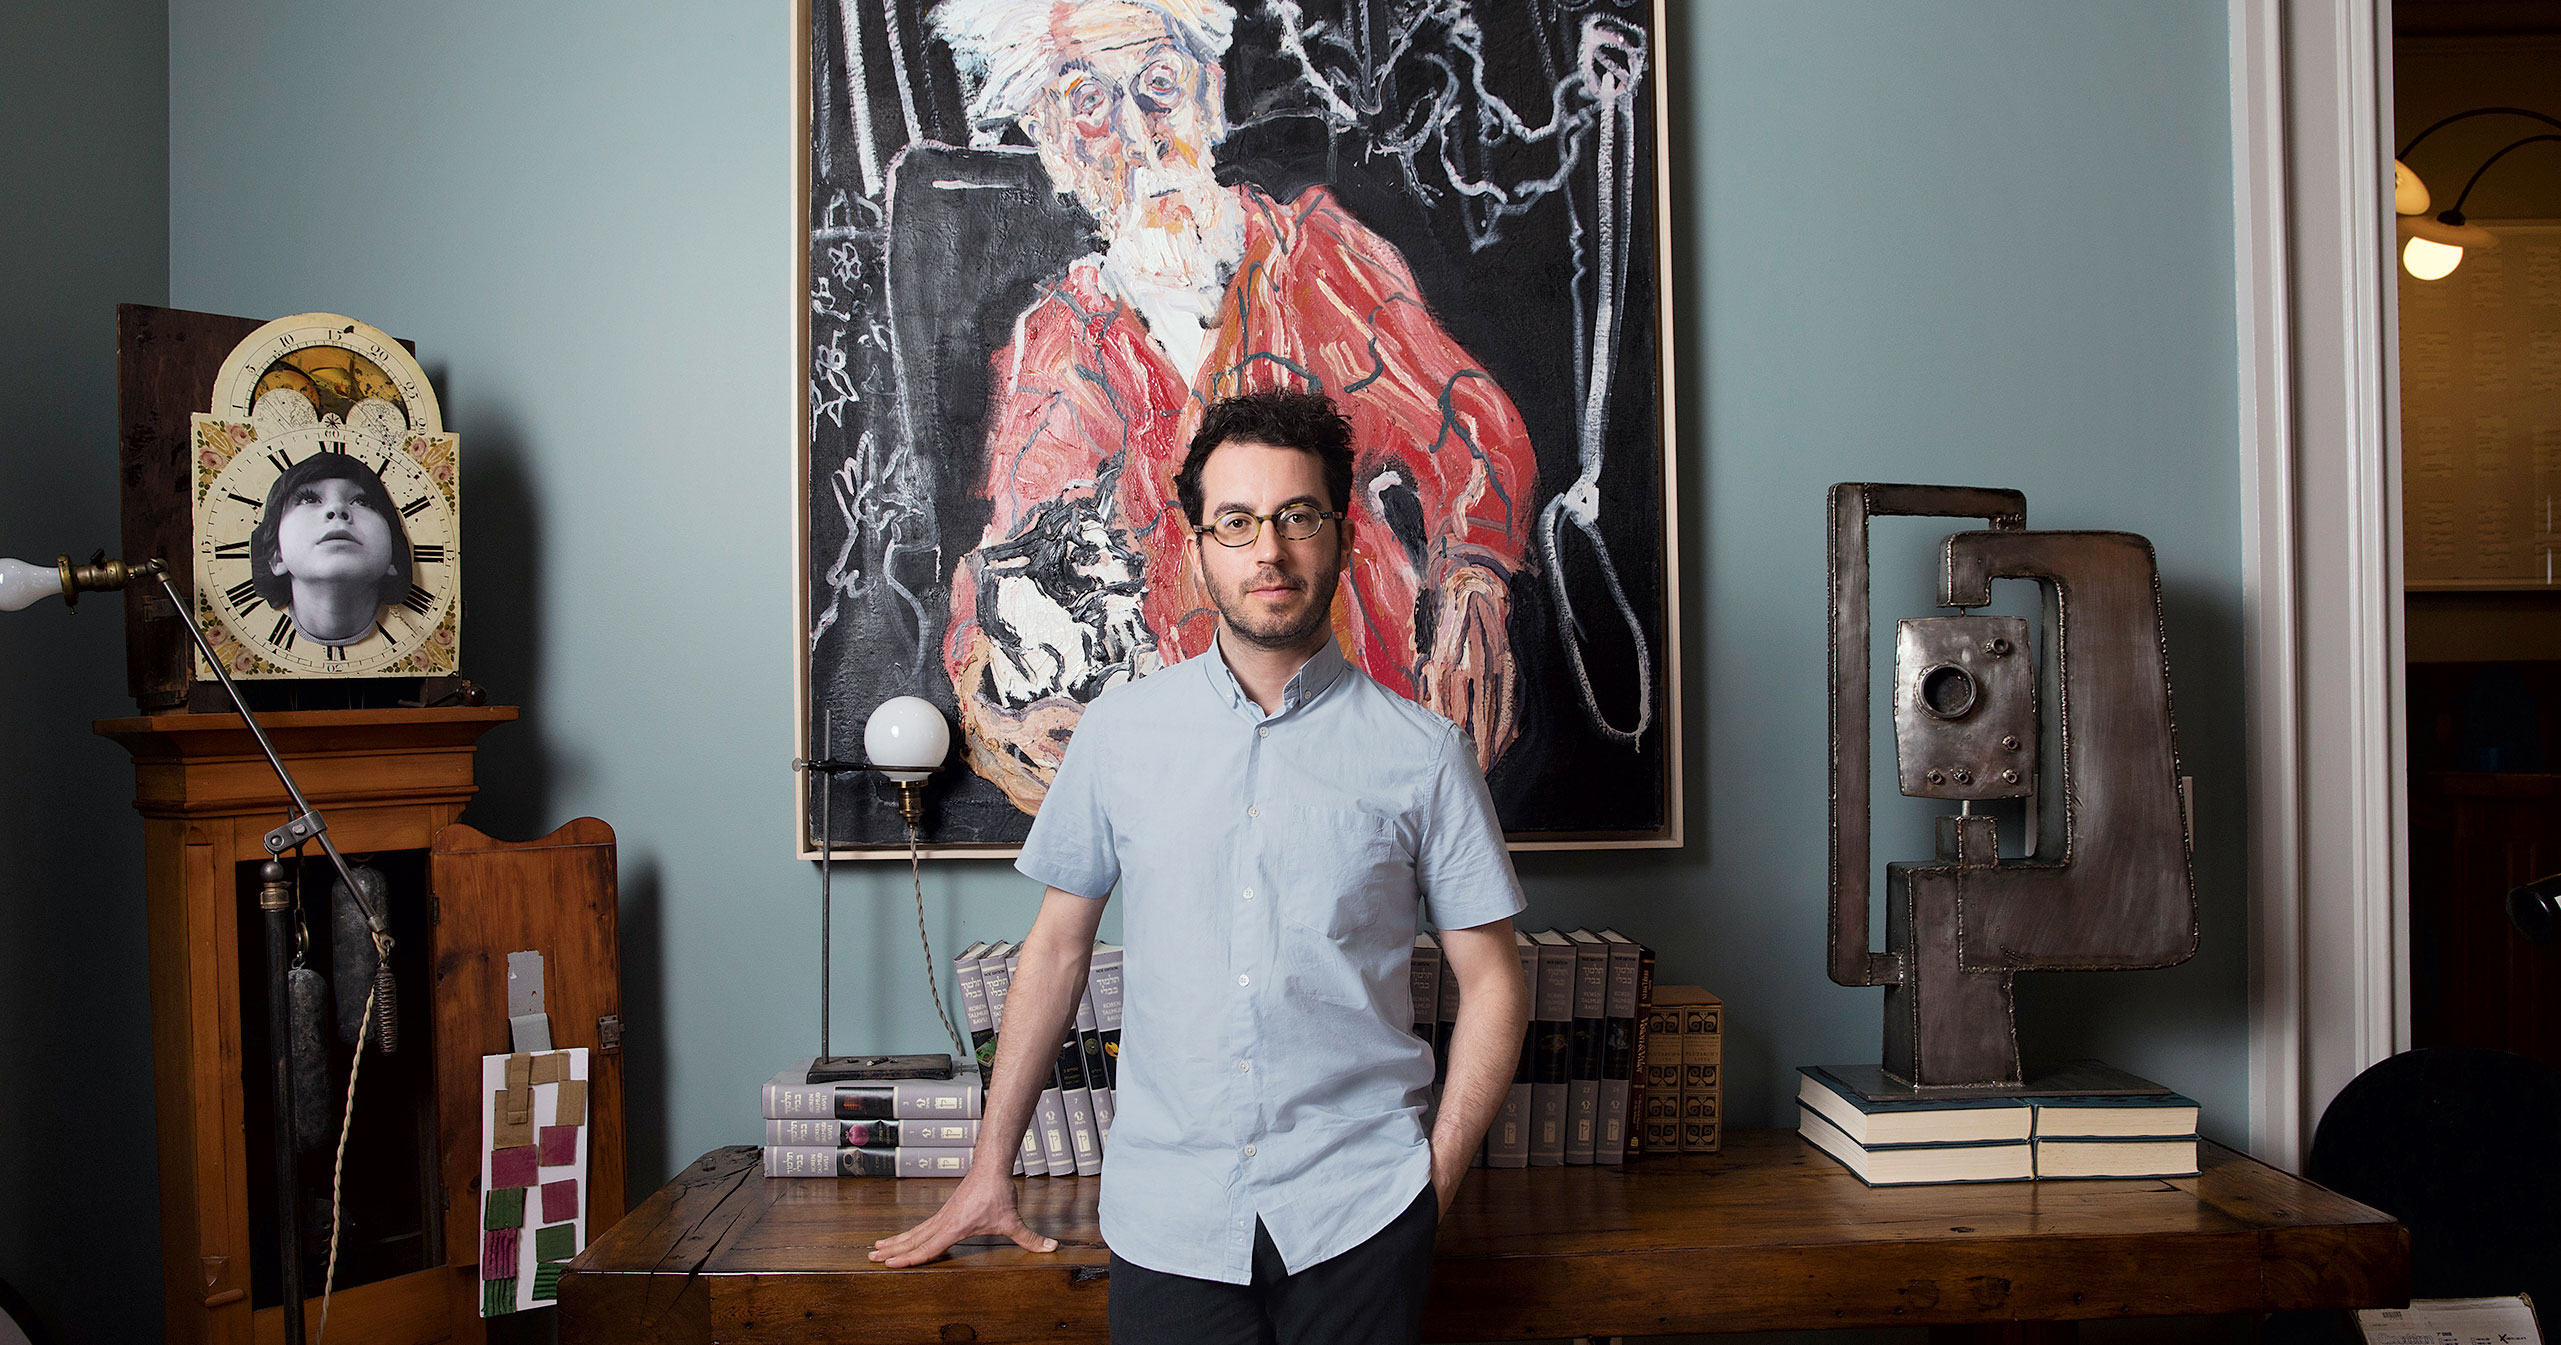 Jonathan Safran Foer: How an Ancient Suicide Note Led Me Down a Rabbit Hole